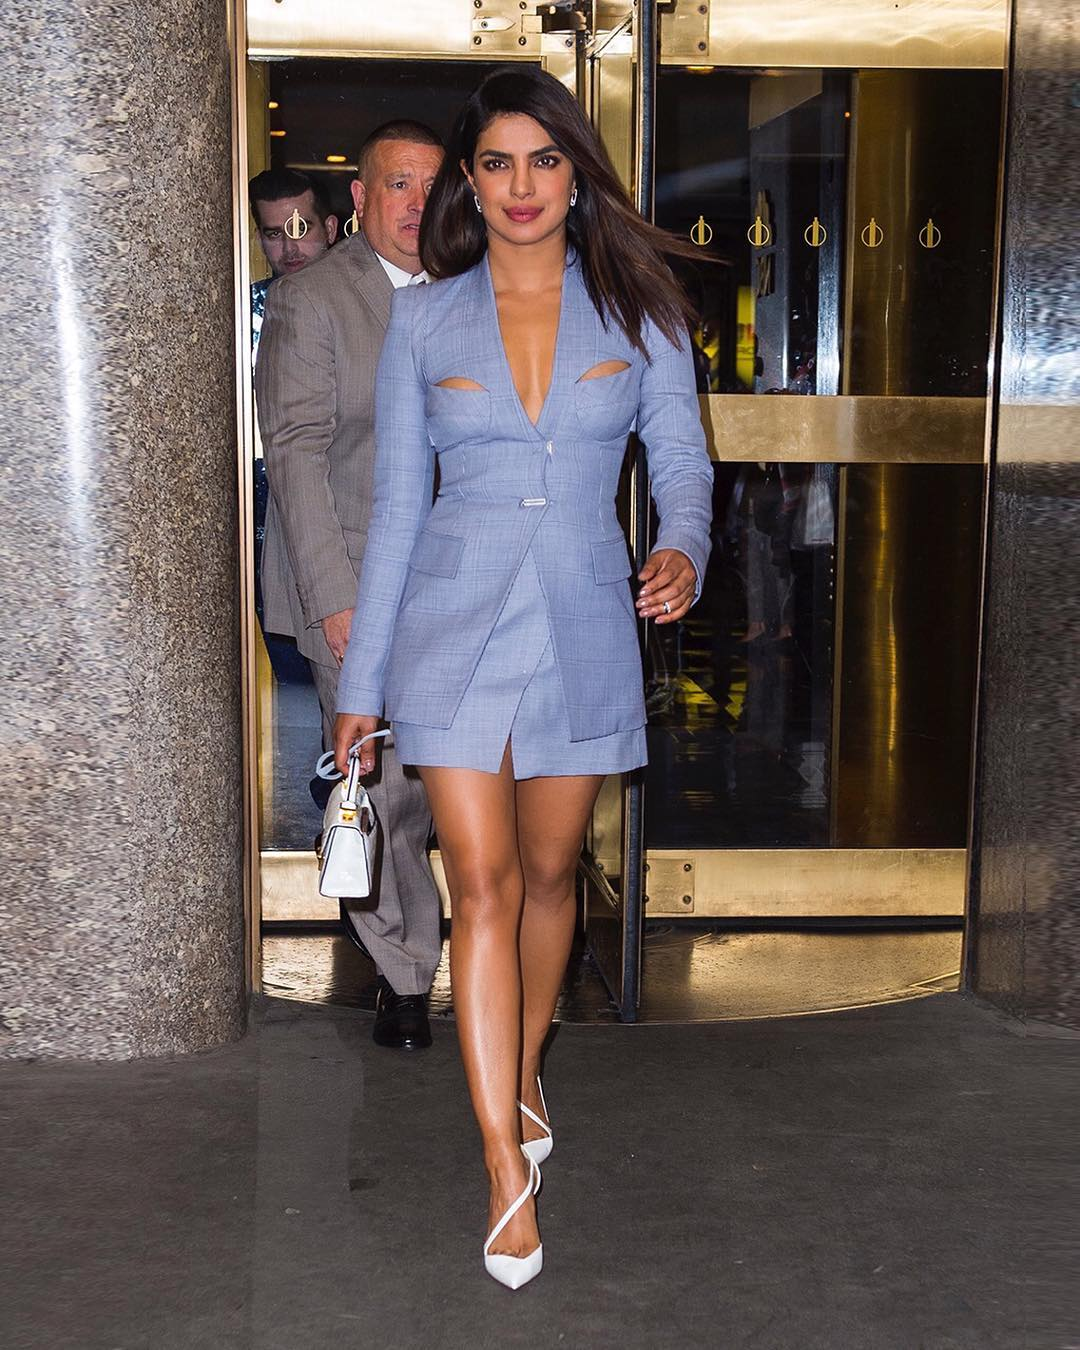 Priyanka Chopra HD Photo | Priyanka Chopra Images